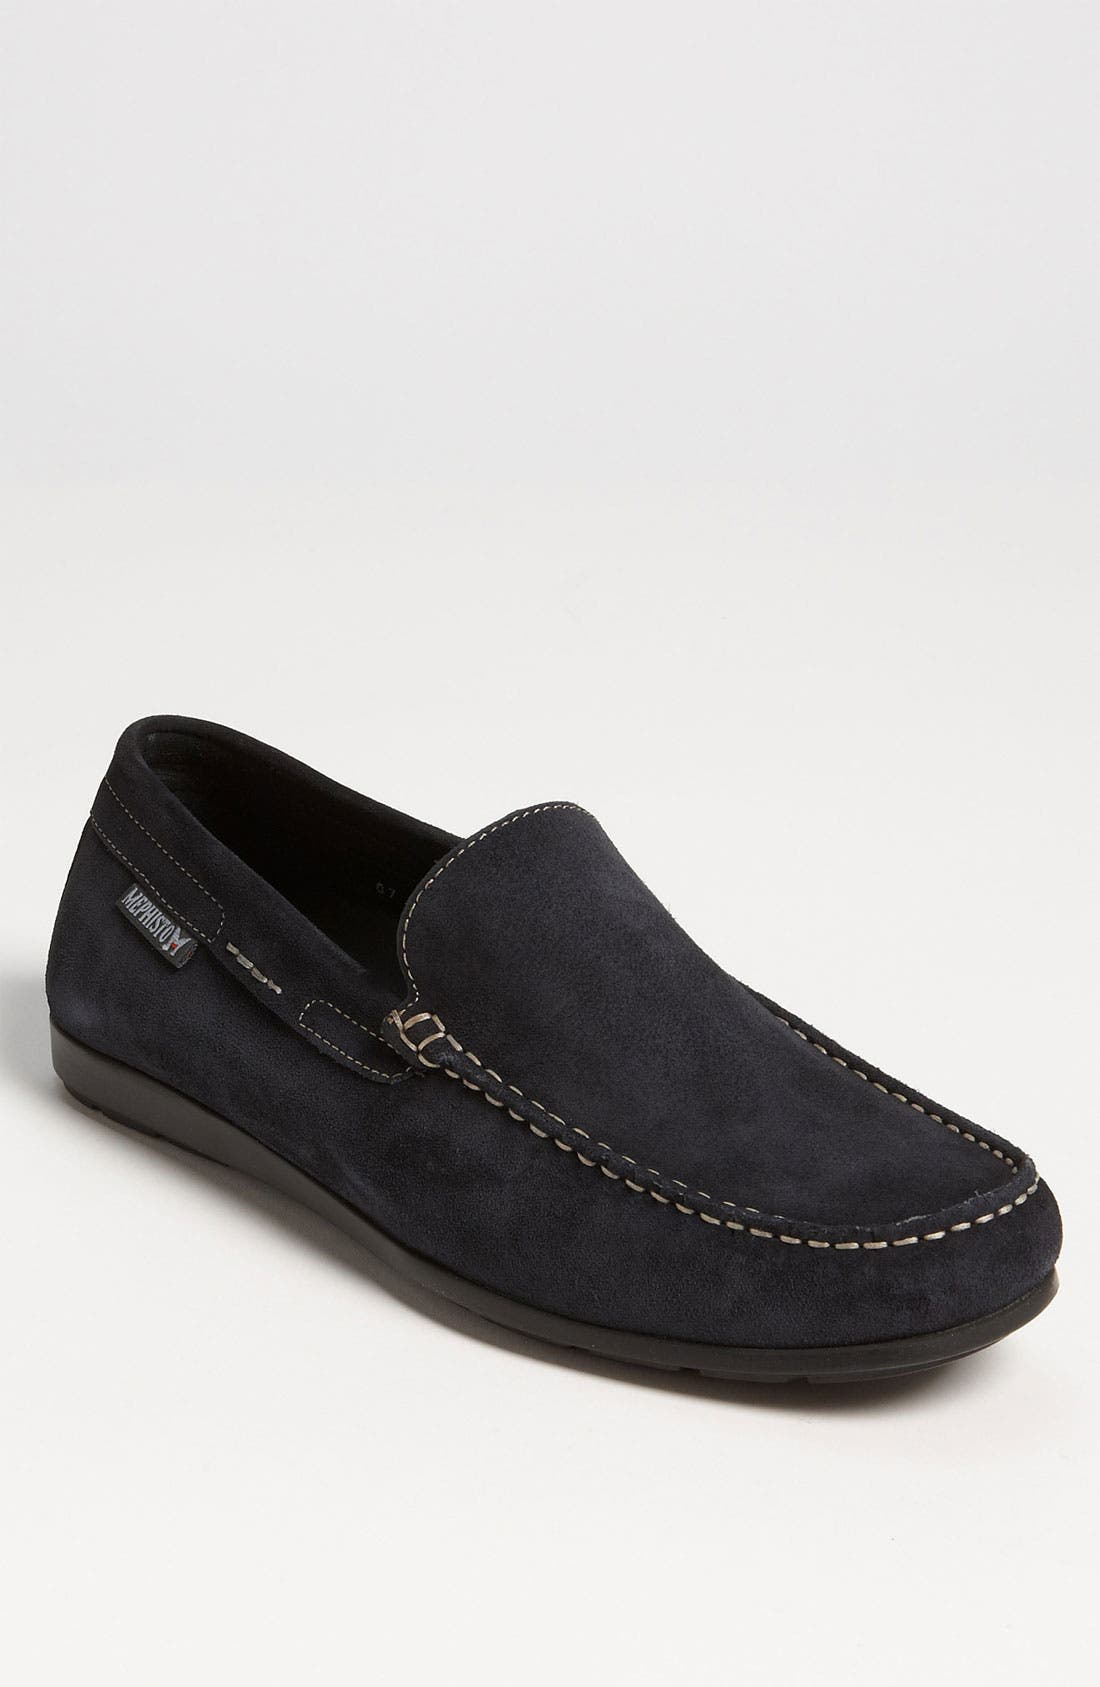 Alternate Image 1 Selected - Mephisto 'Algoras' Slip-On